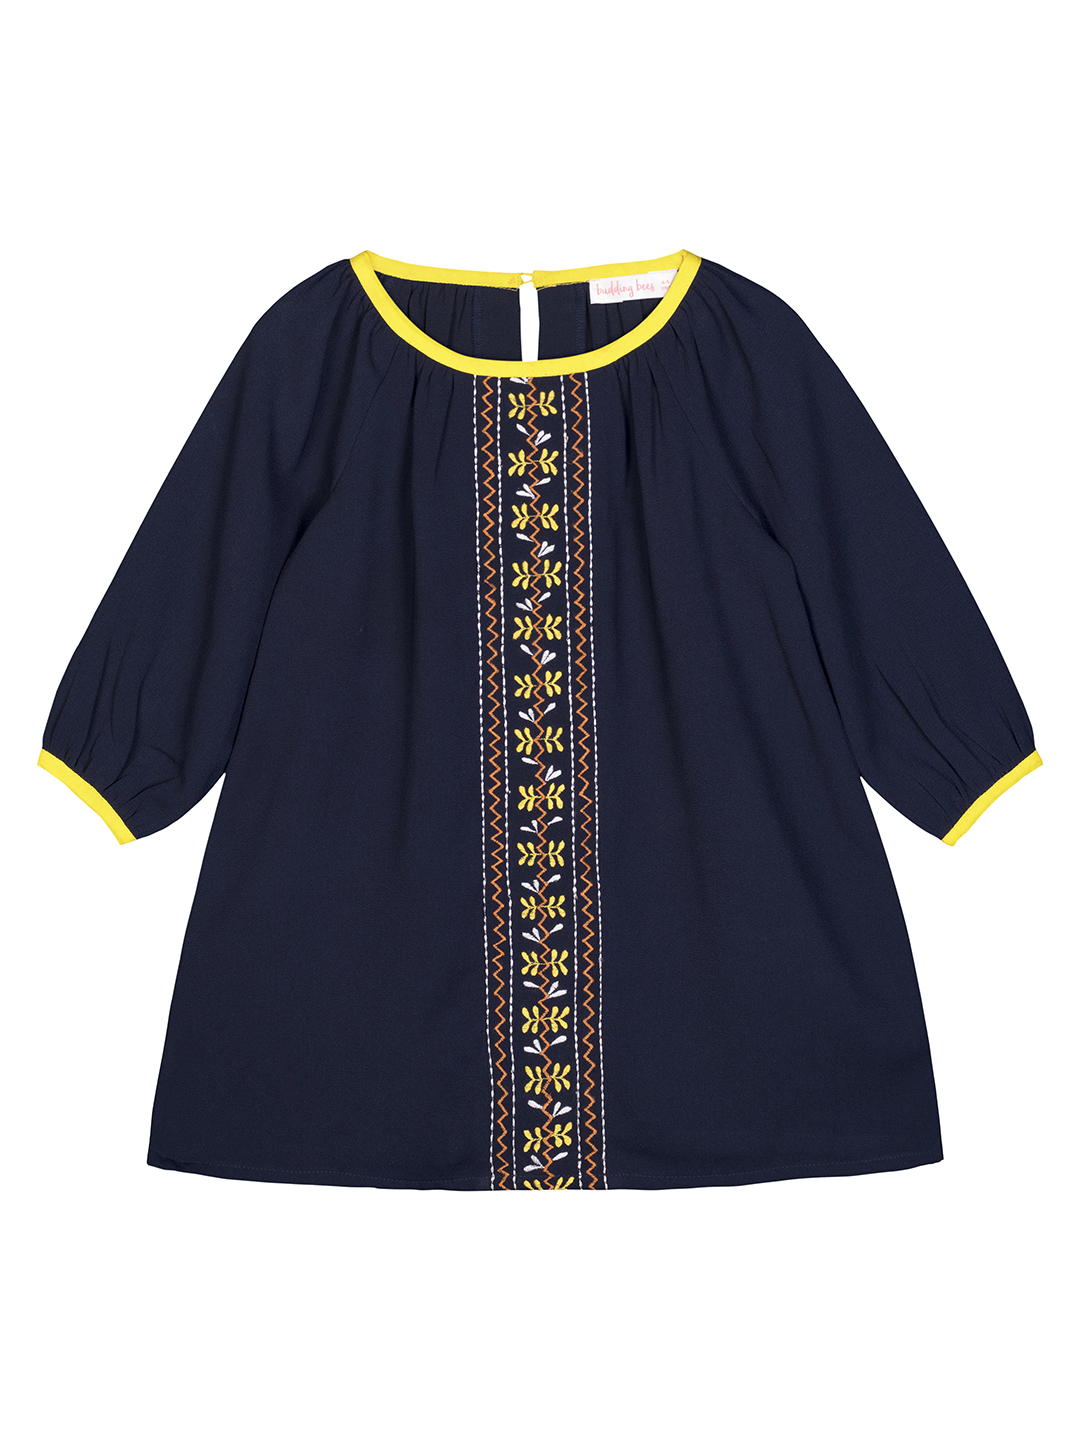 Budding Bees | Budding Bees Girls Blue Solid Embroidered Dress